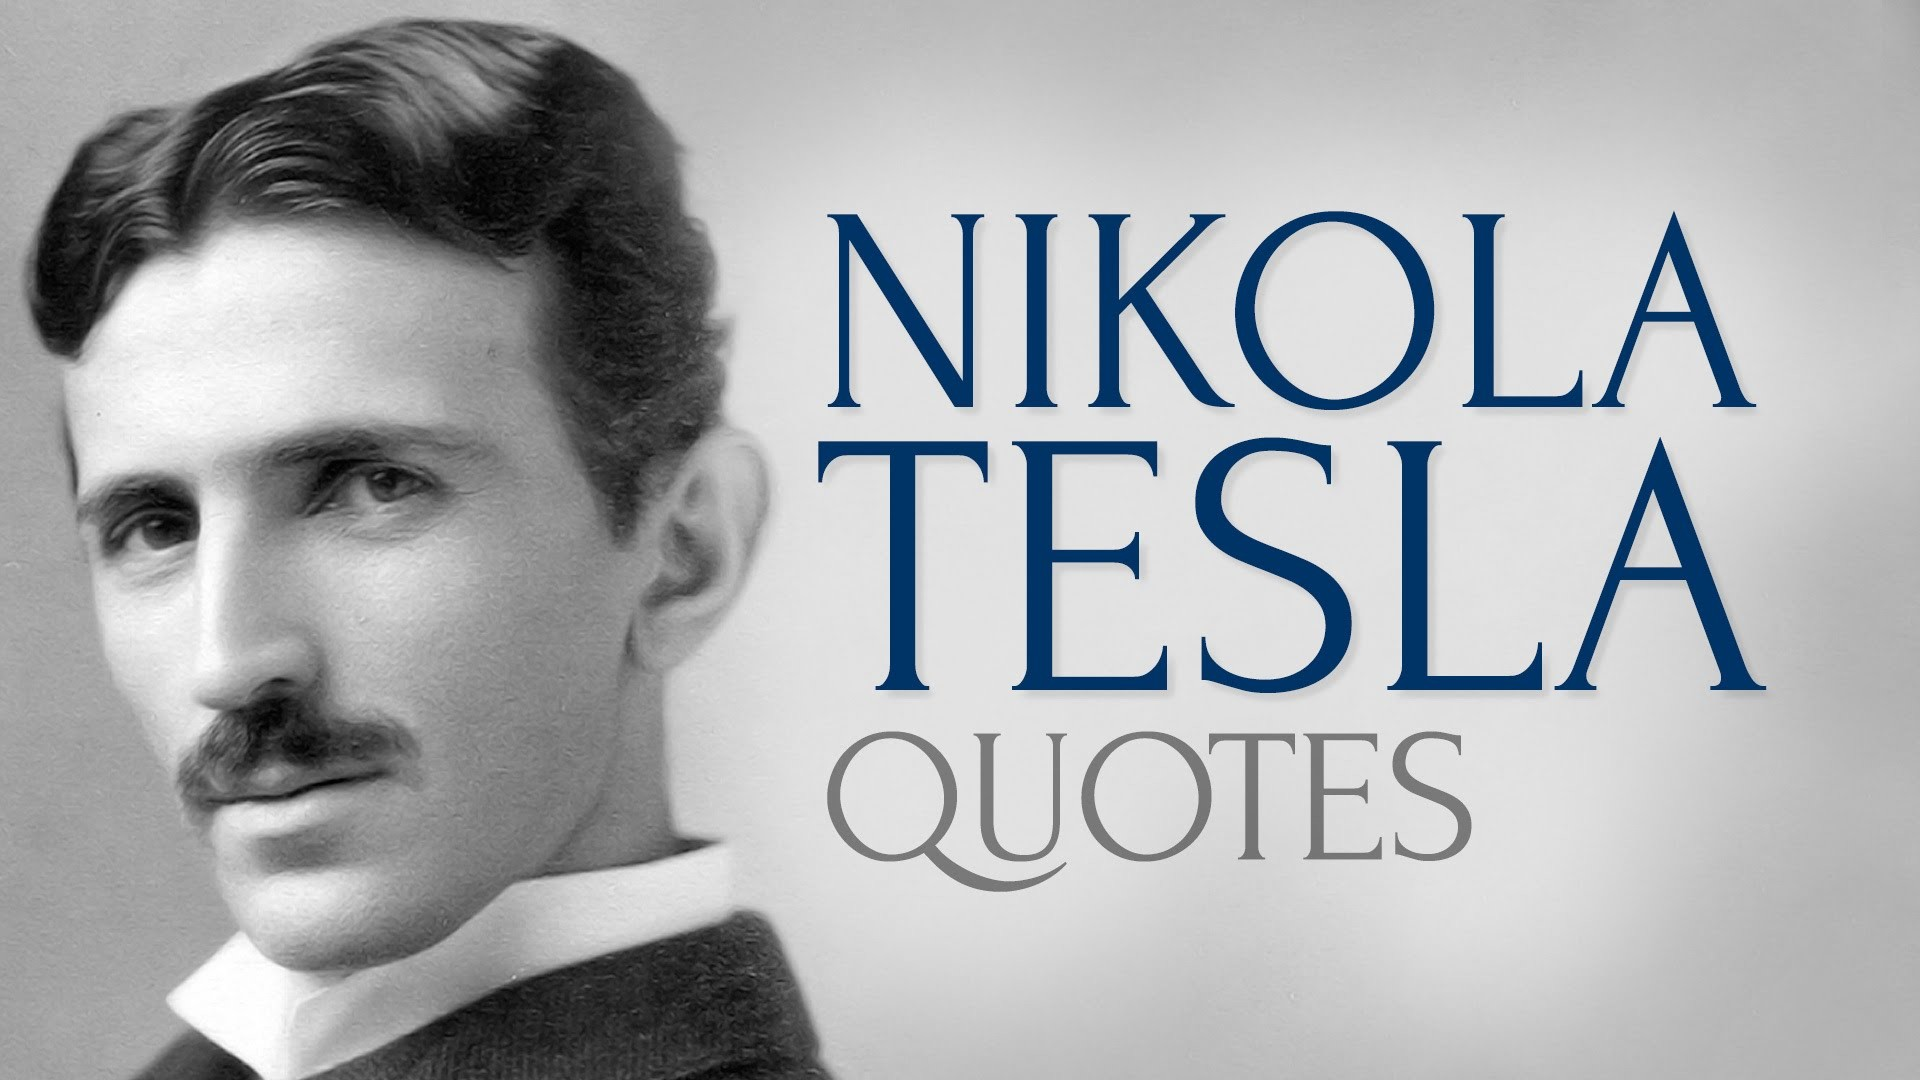 Nikola Tesla Wallpaper Hd 67 Images